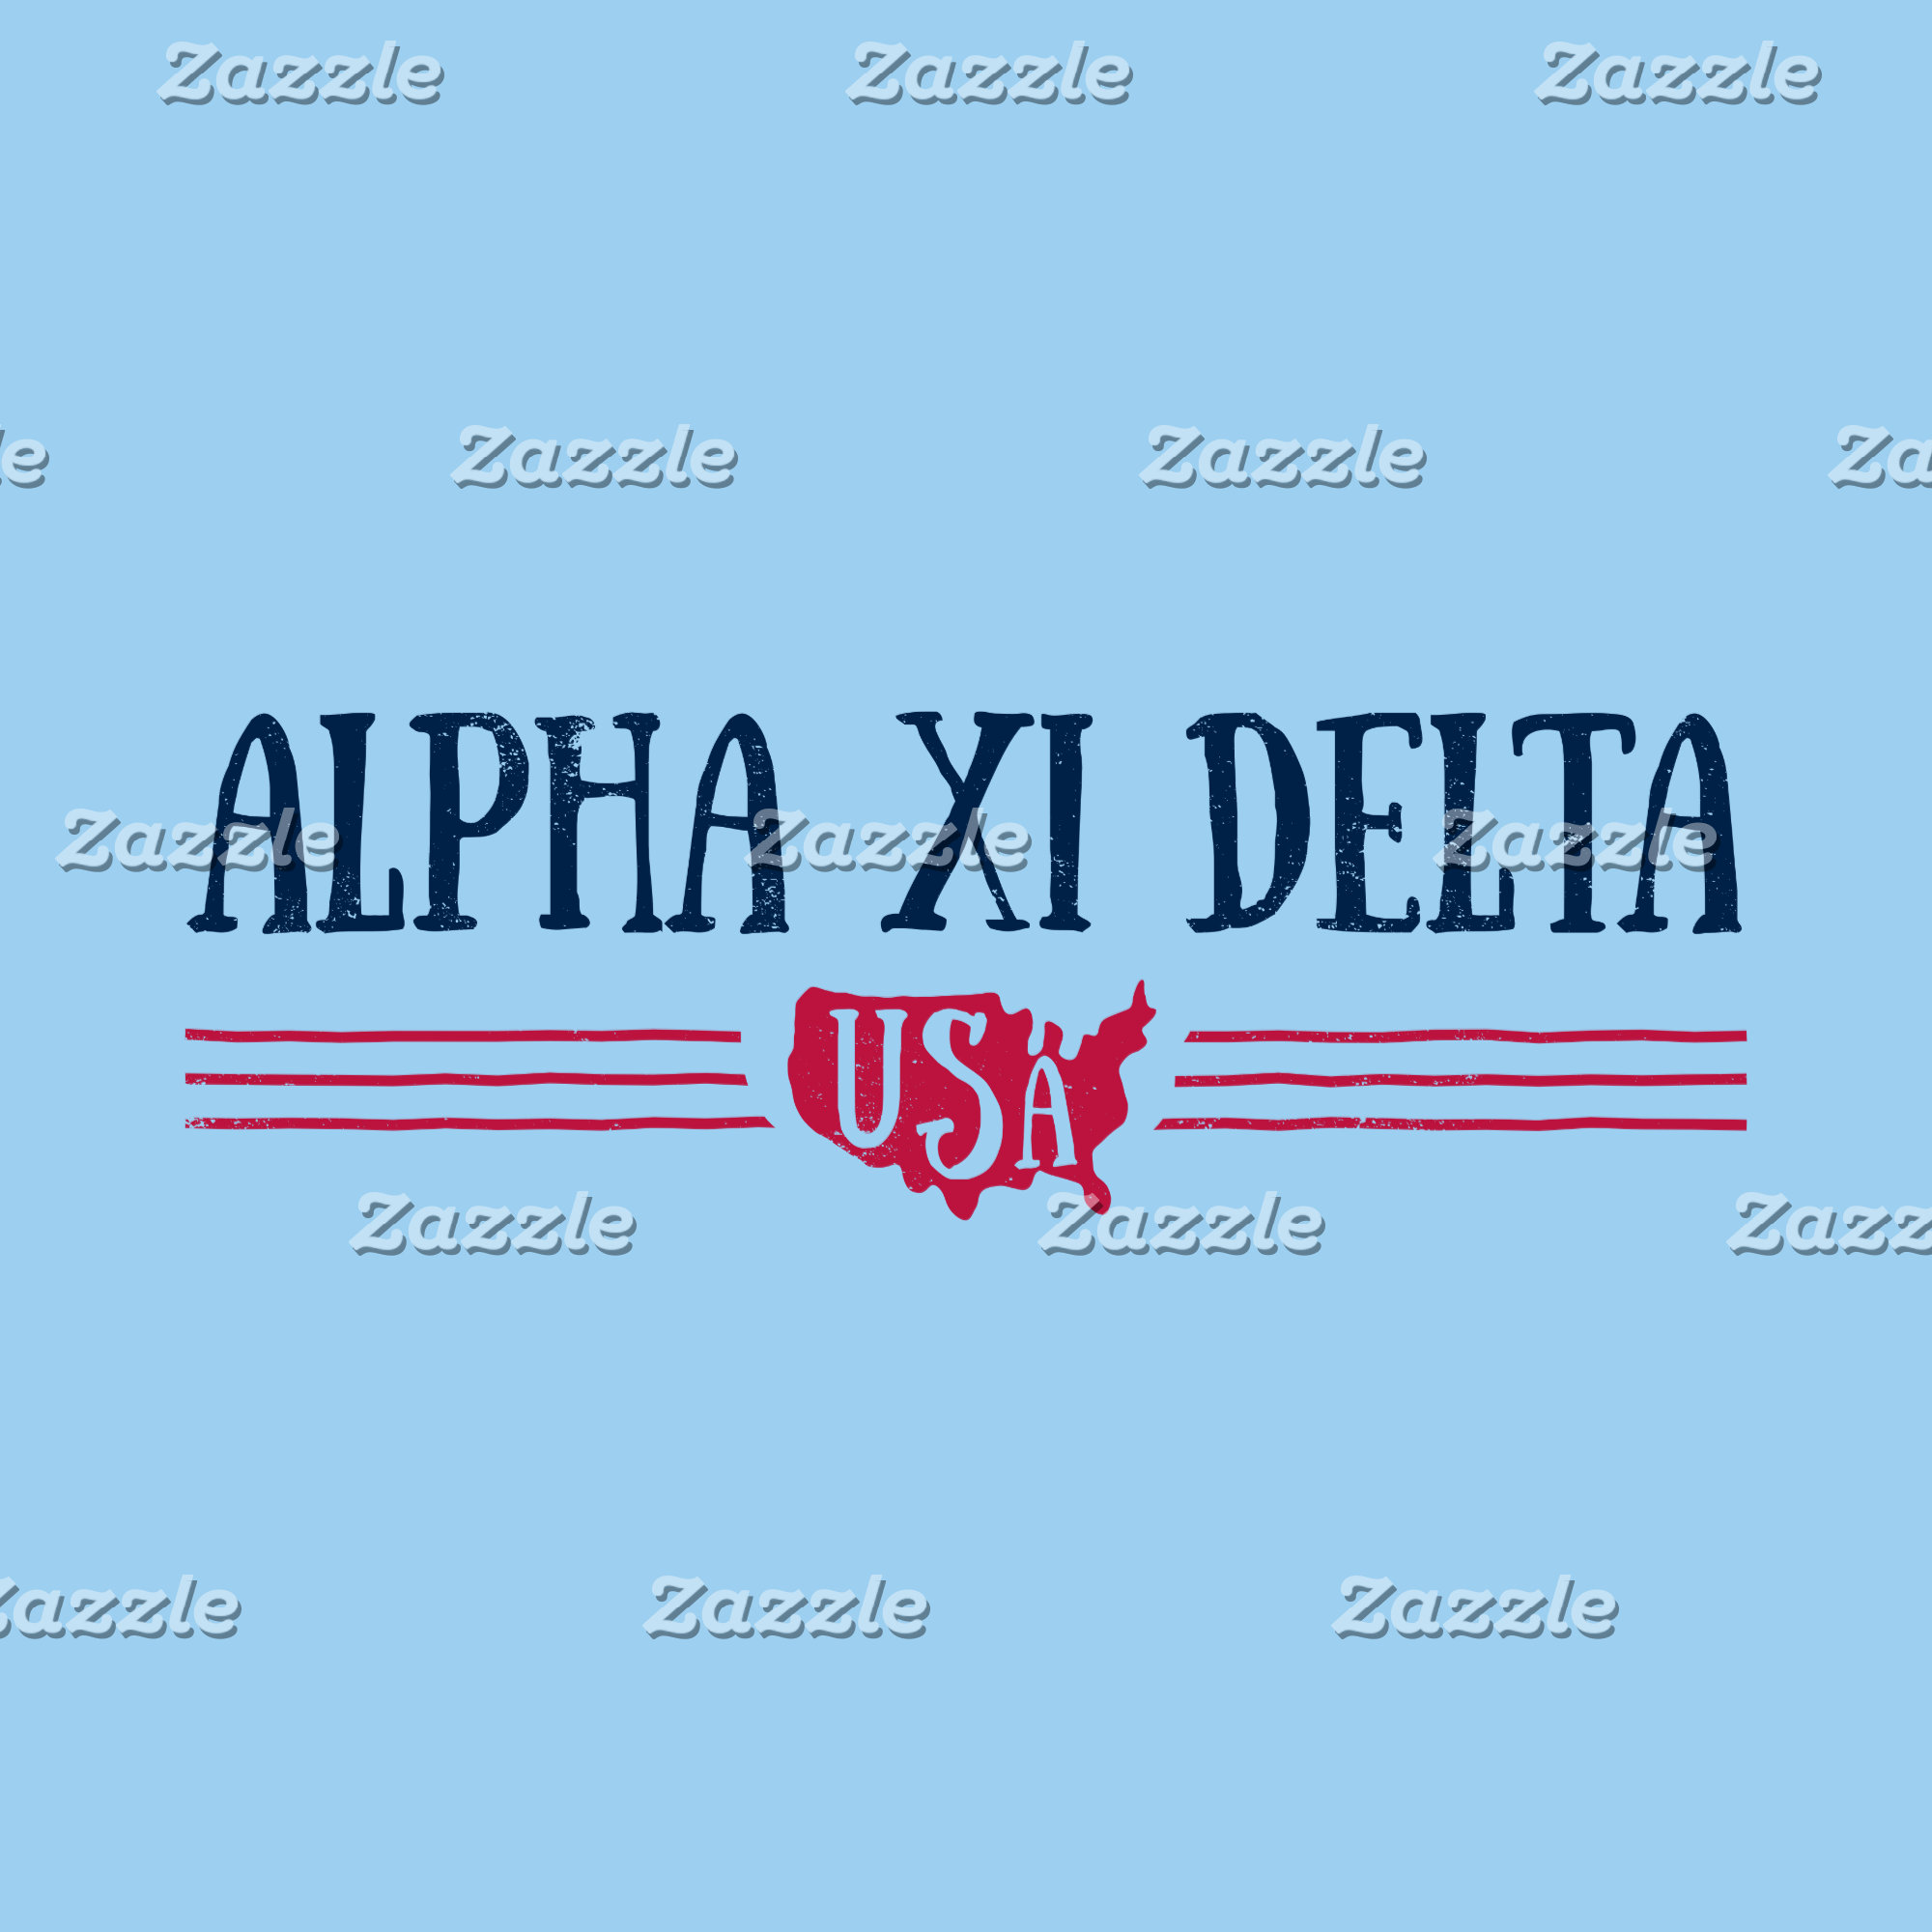 Alpha Xi Delta - USA